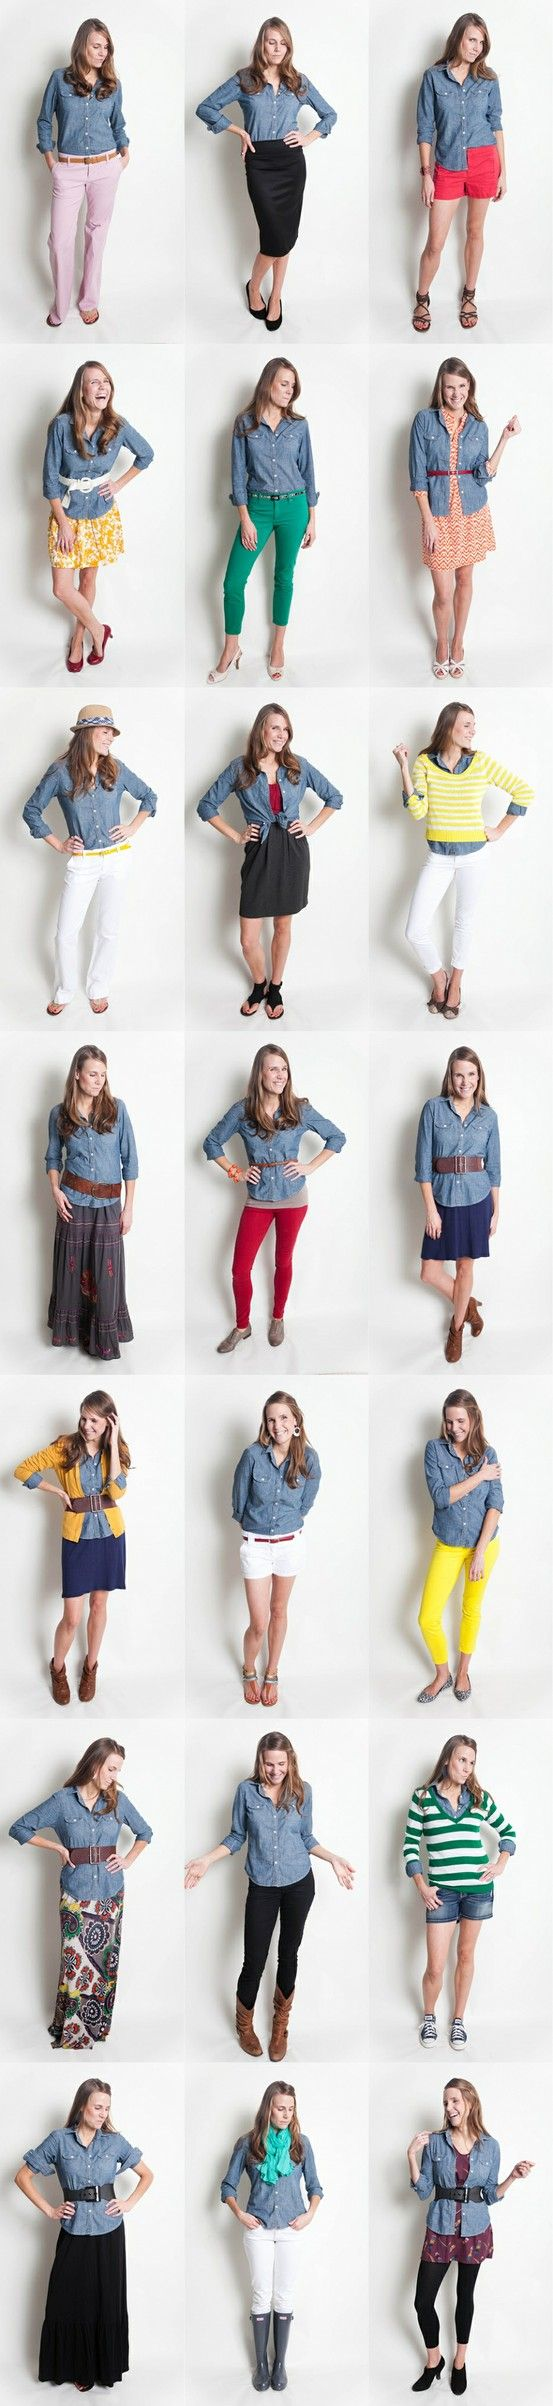 21 ways to wear your denim/jean/chambray shirt:) this comes in handy, because I…